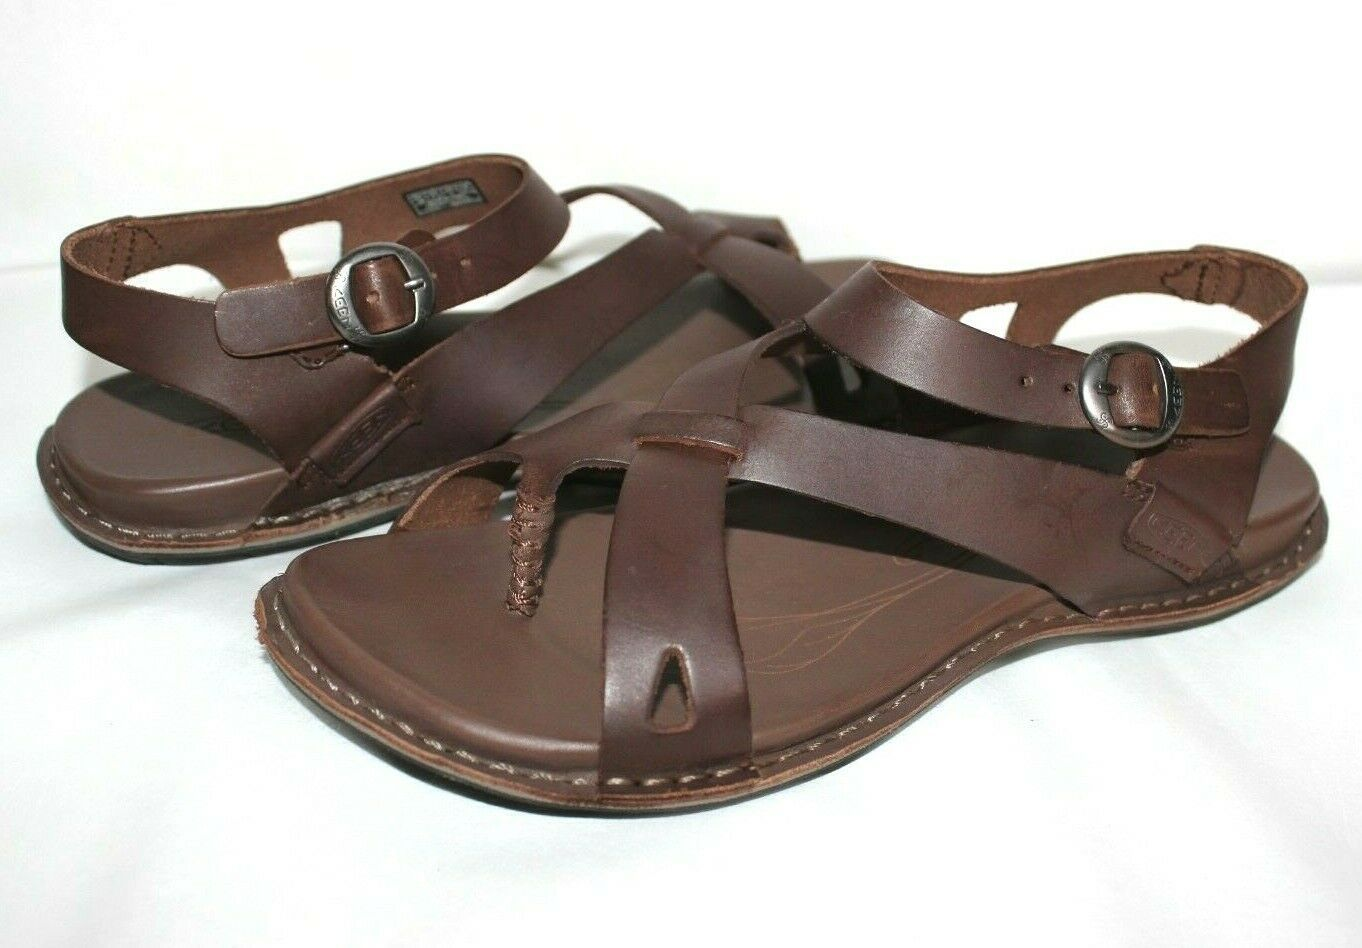 Primary image for ✿ KEEN Alman Dark Brown Leather Ankle-Strap Sandals 7.5 M EXCELLENT!  L@@K!28